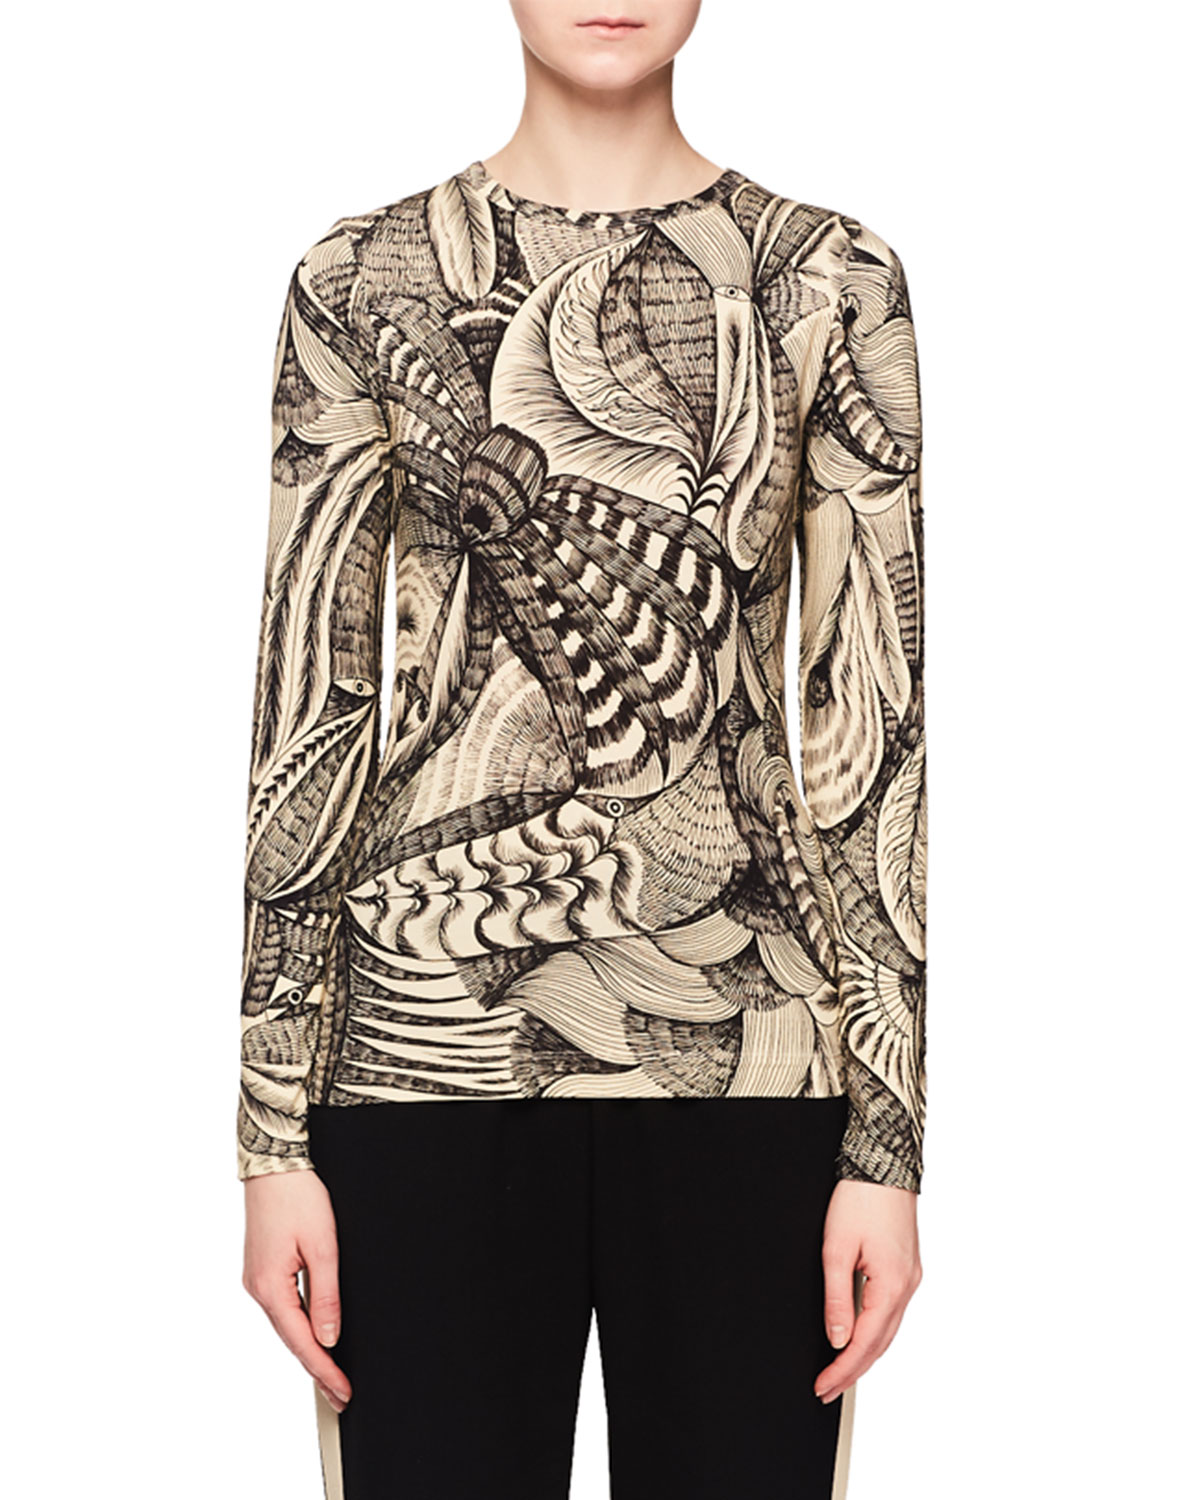 ad32427a0d Dries Van Noten Jewel-Neck Long-Sleeve Tattoo-Print T-Shirt